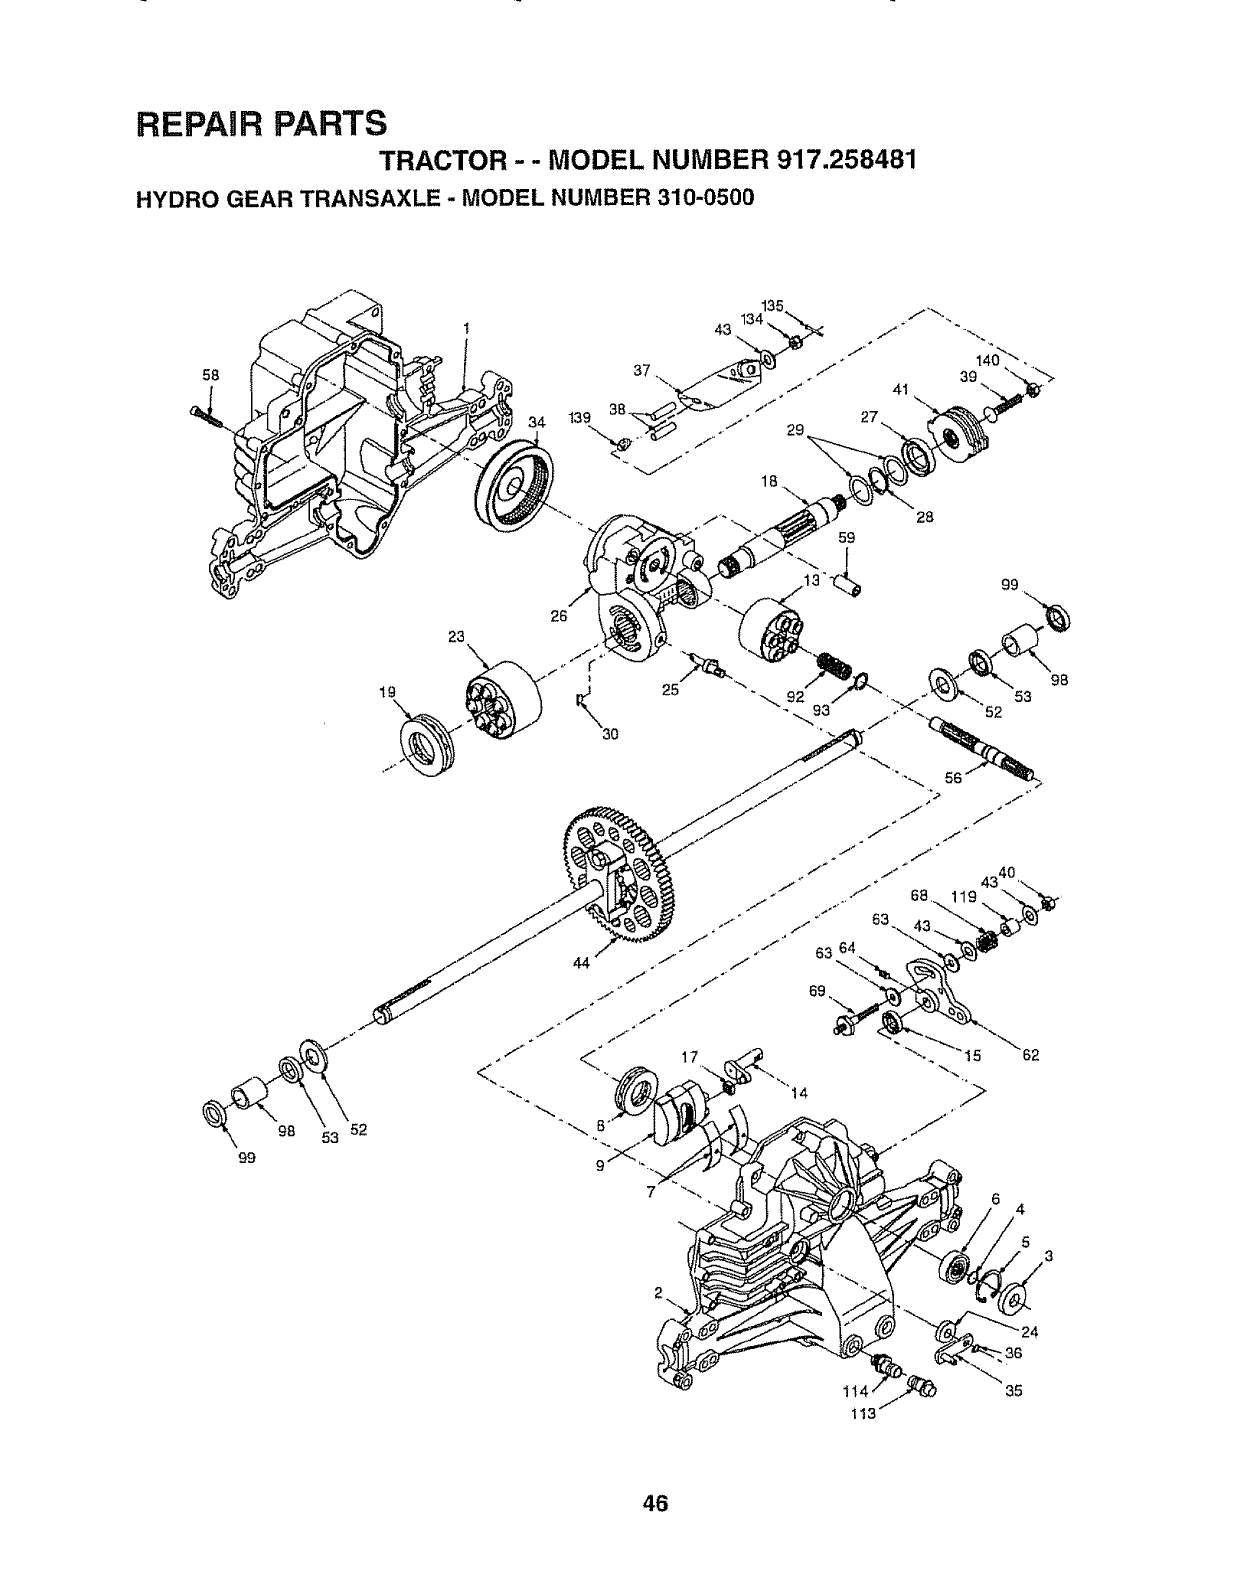 Craftsman 917258481 User Manual TRACTOR Manuals And Guides